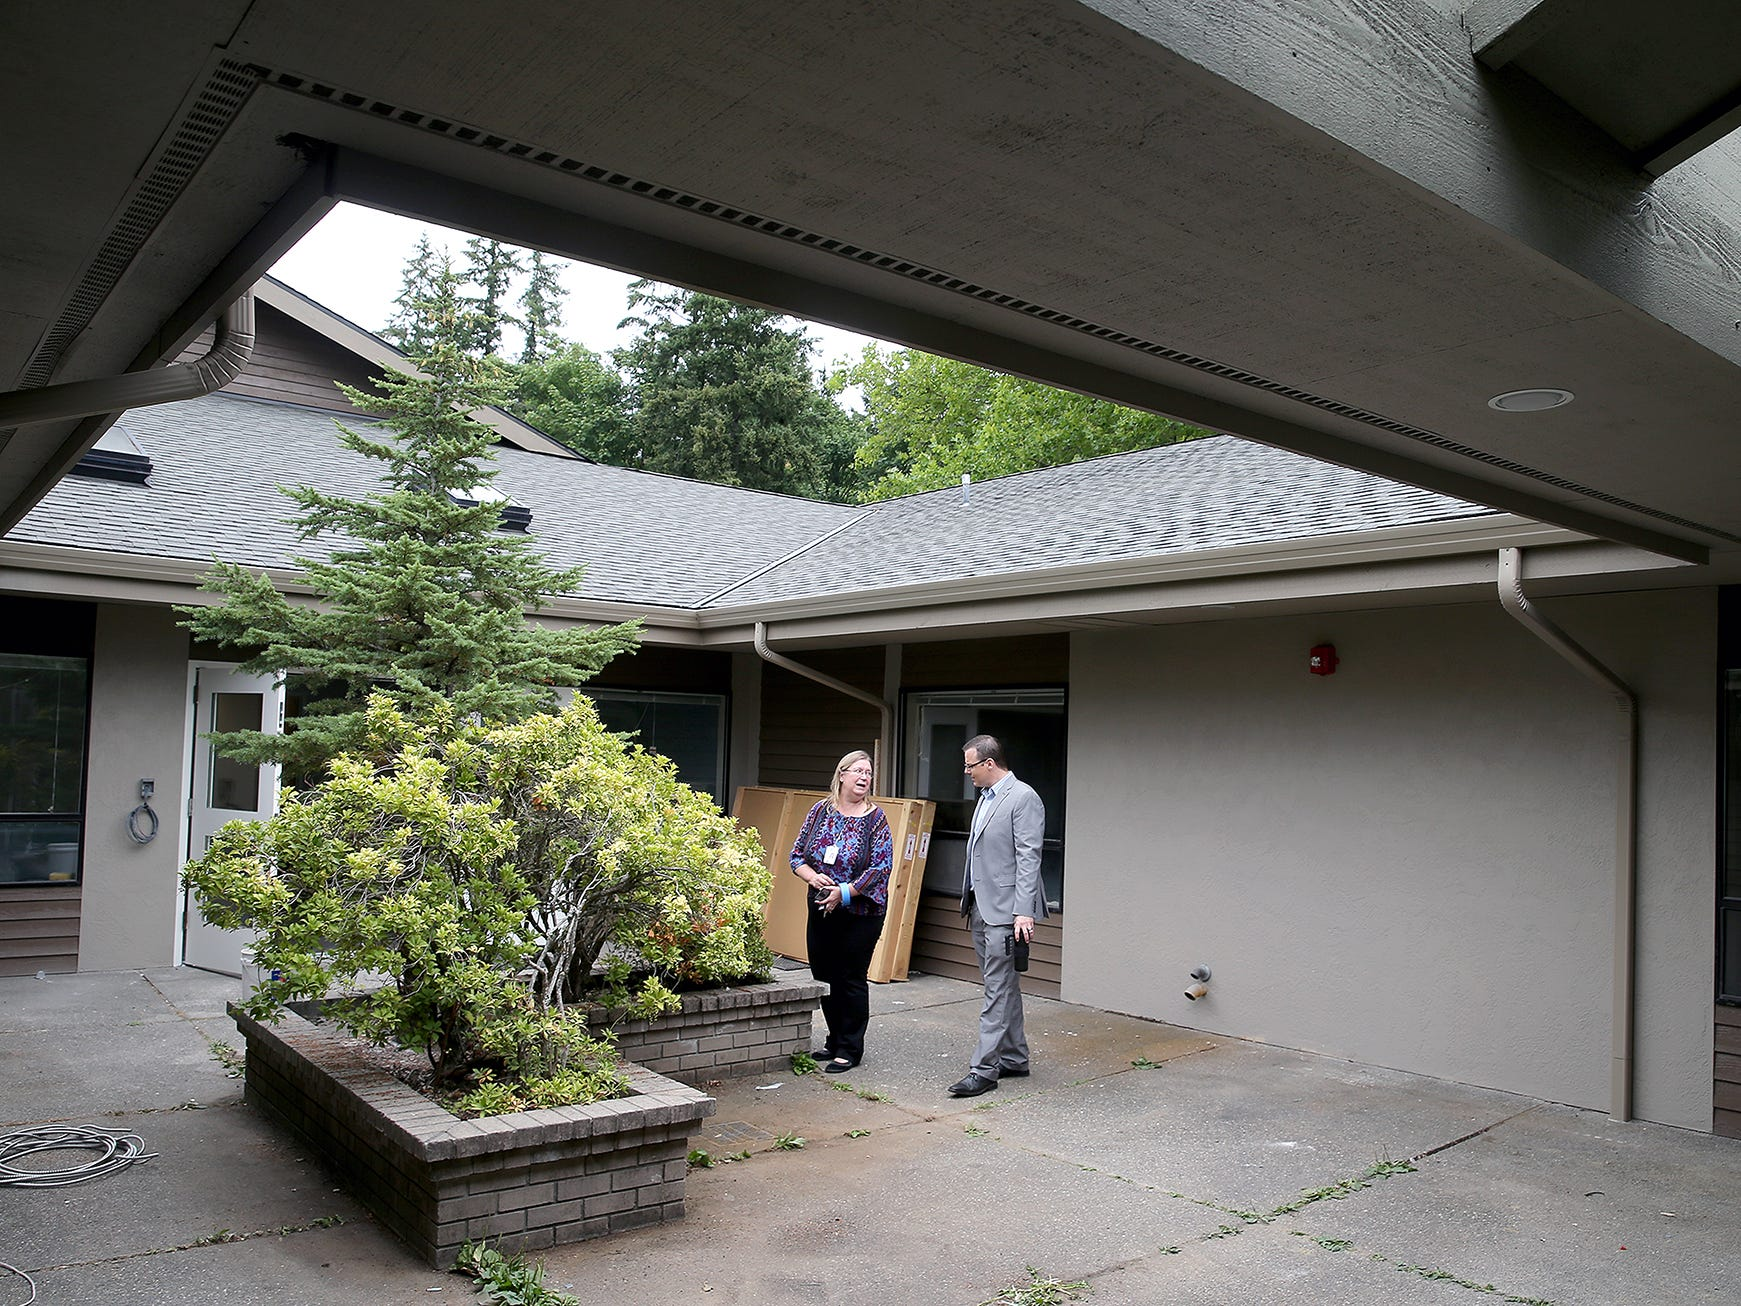 Rochelle Doan, center, Chief Advancement Officer and, Neil Olson Director of 24/7 recovery Services at Kitsap Mental Health Services in the courtyard of the long-awaited crisis triage center in East Bremerton.